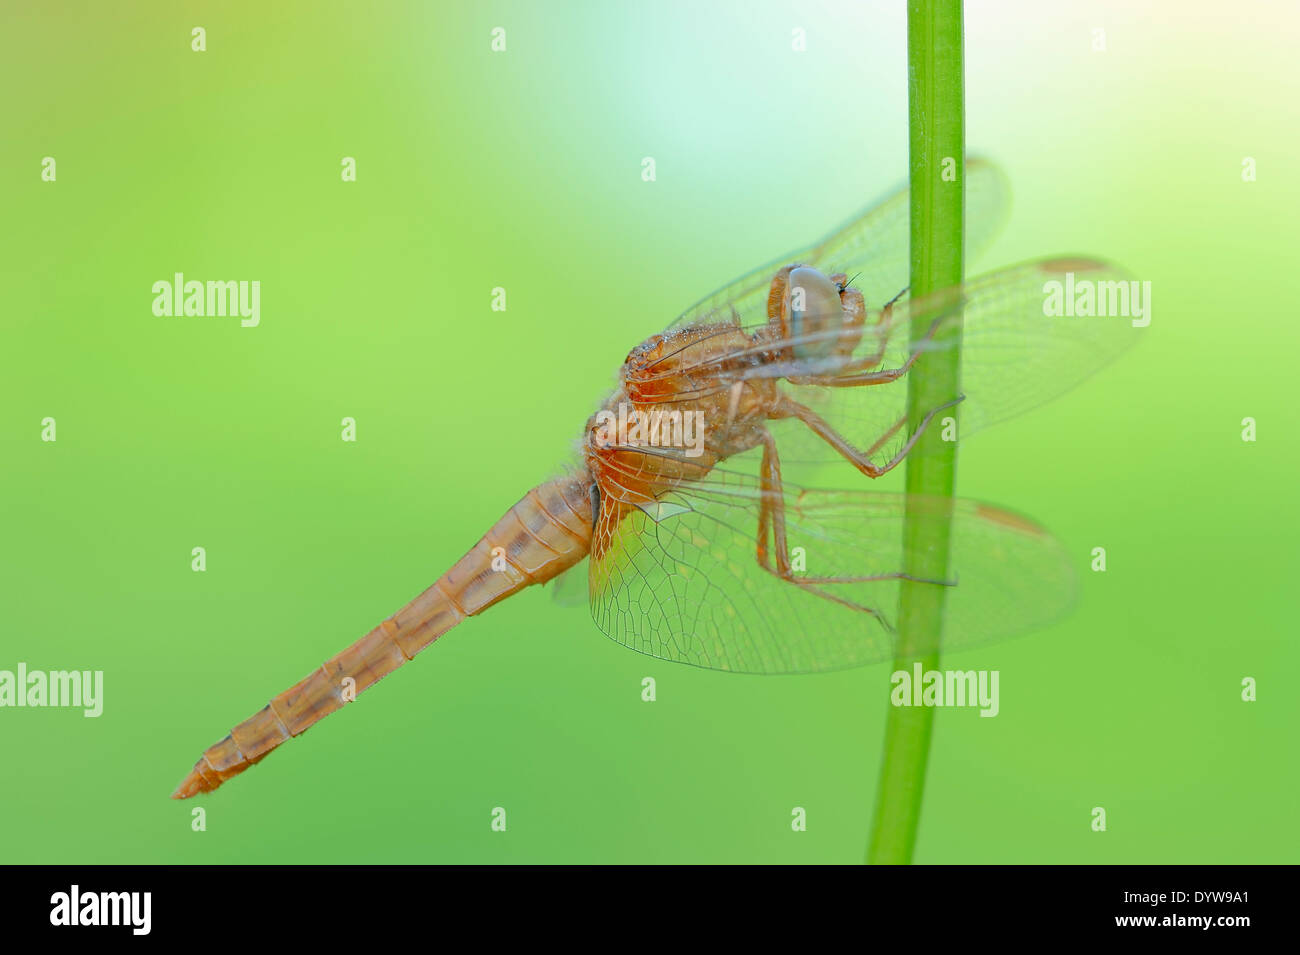 Scarlet Dragonfly, Scarlet Darter, Broad Scarlet or Red Dragonfly (Crocothemis erythraea), juvenile, male Stock Photo